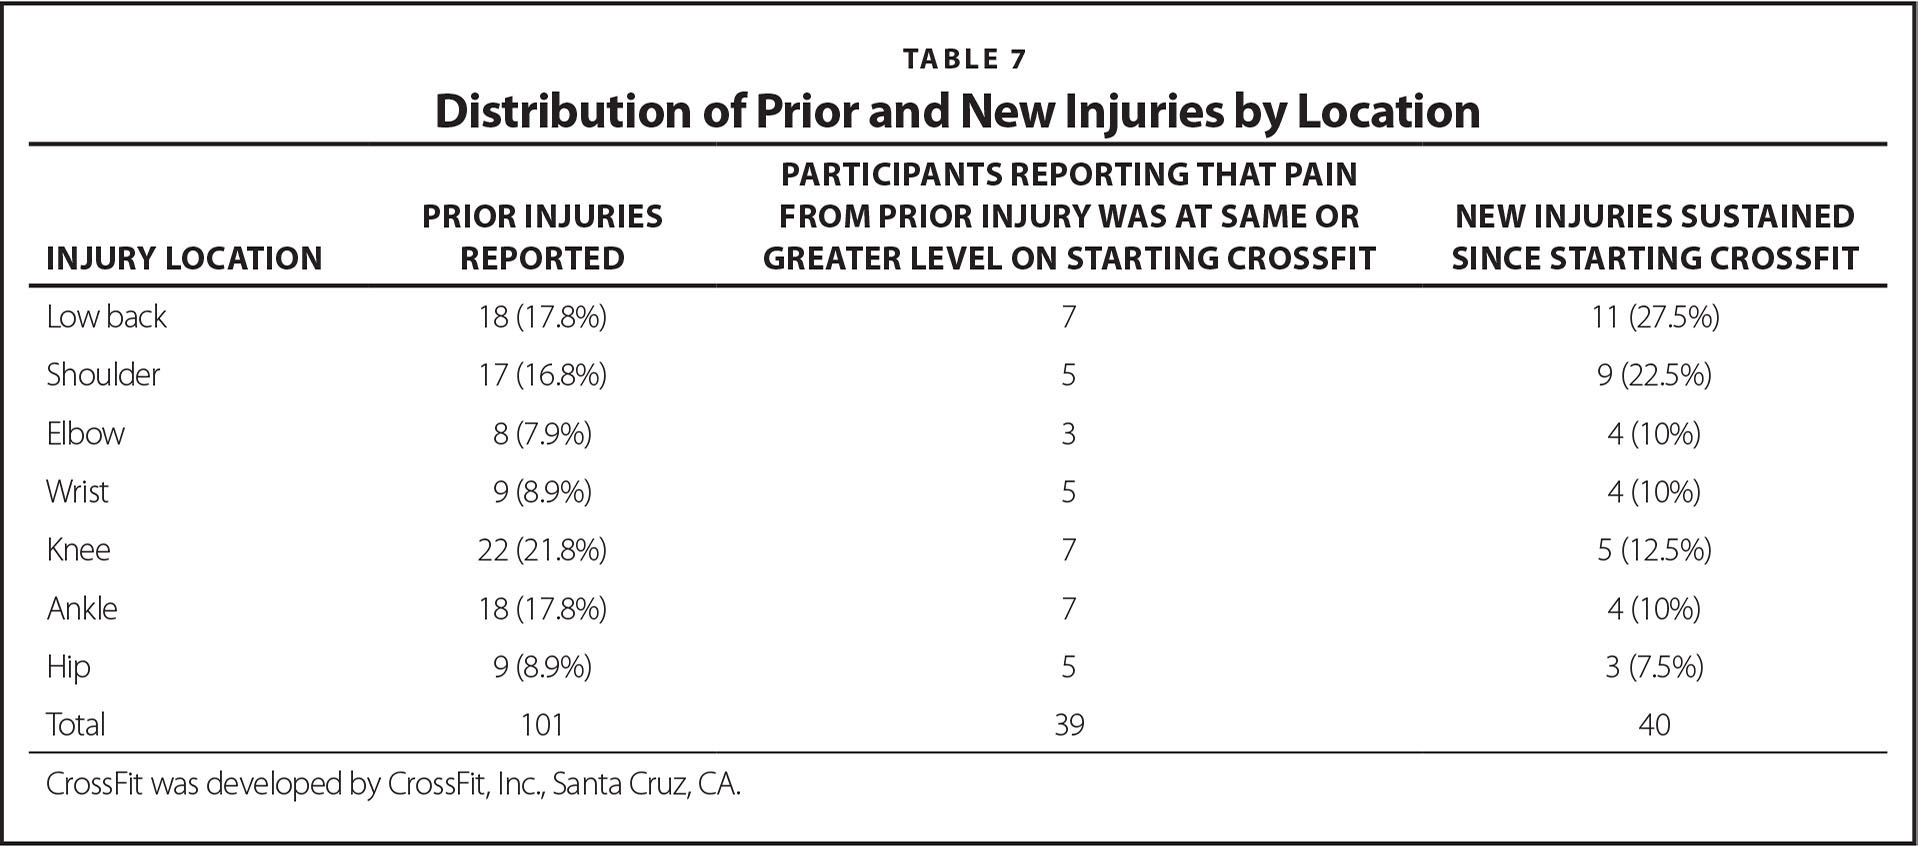 Distribution of Prior and New Injuries by Location